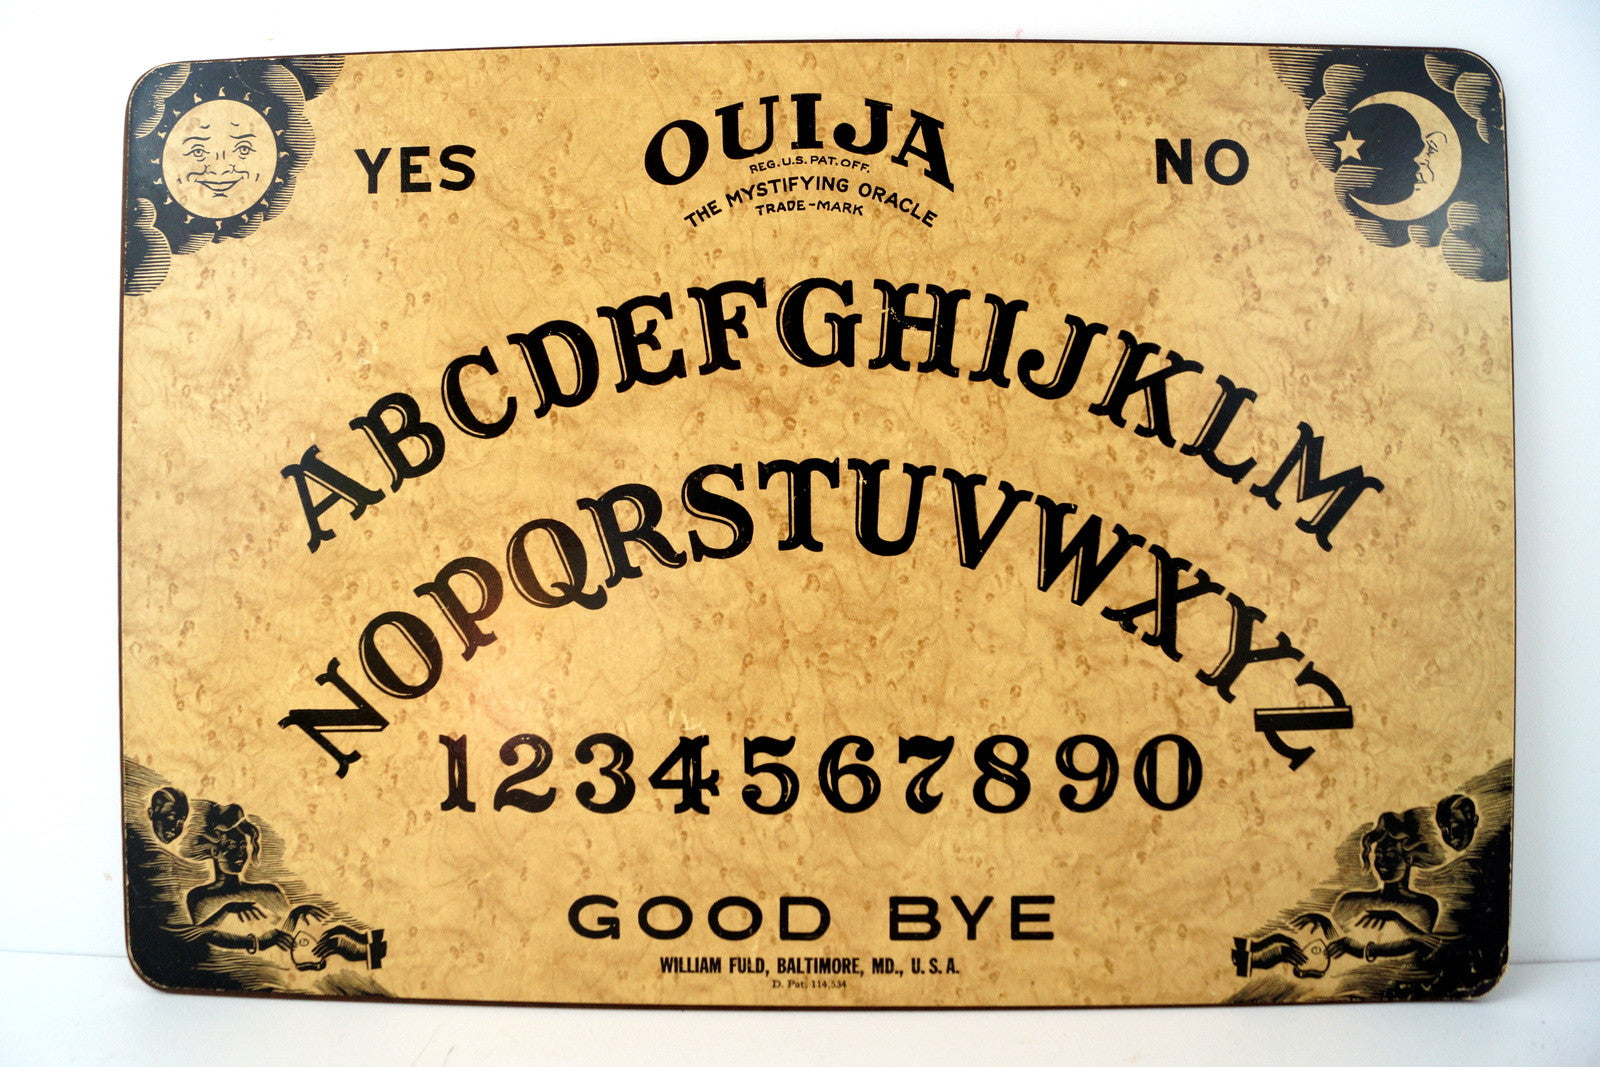 Vintage Original Ouija Board by William Fuld, Extra Large (c